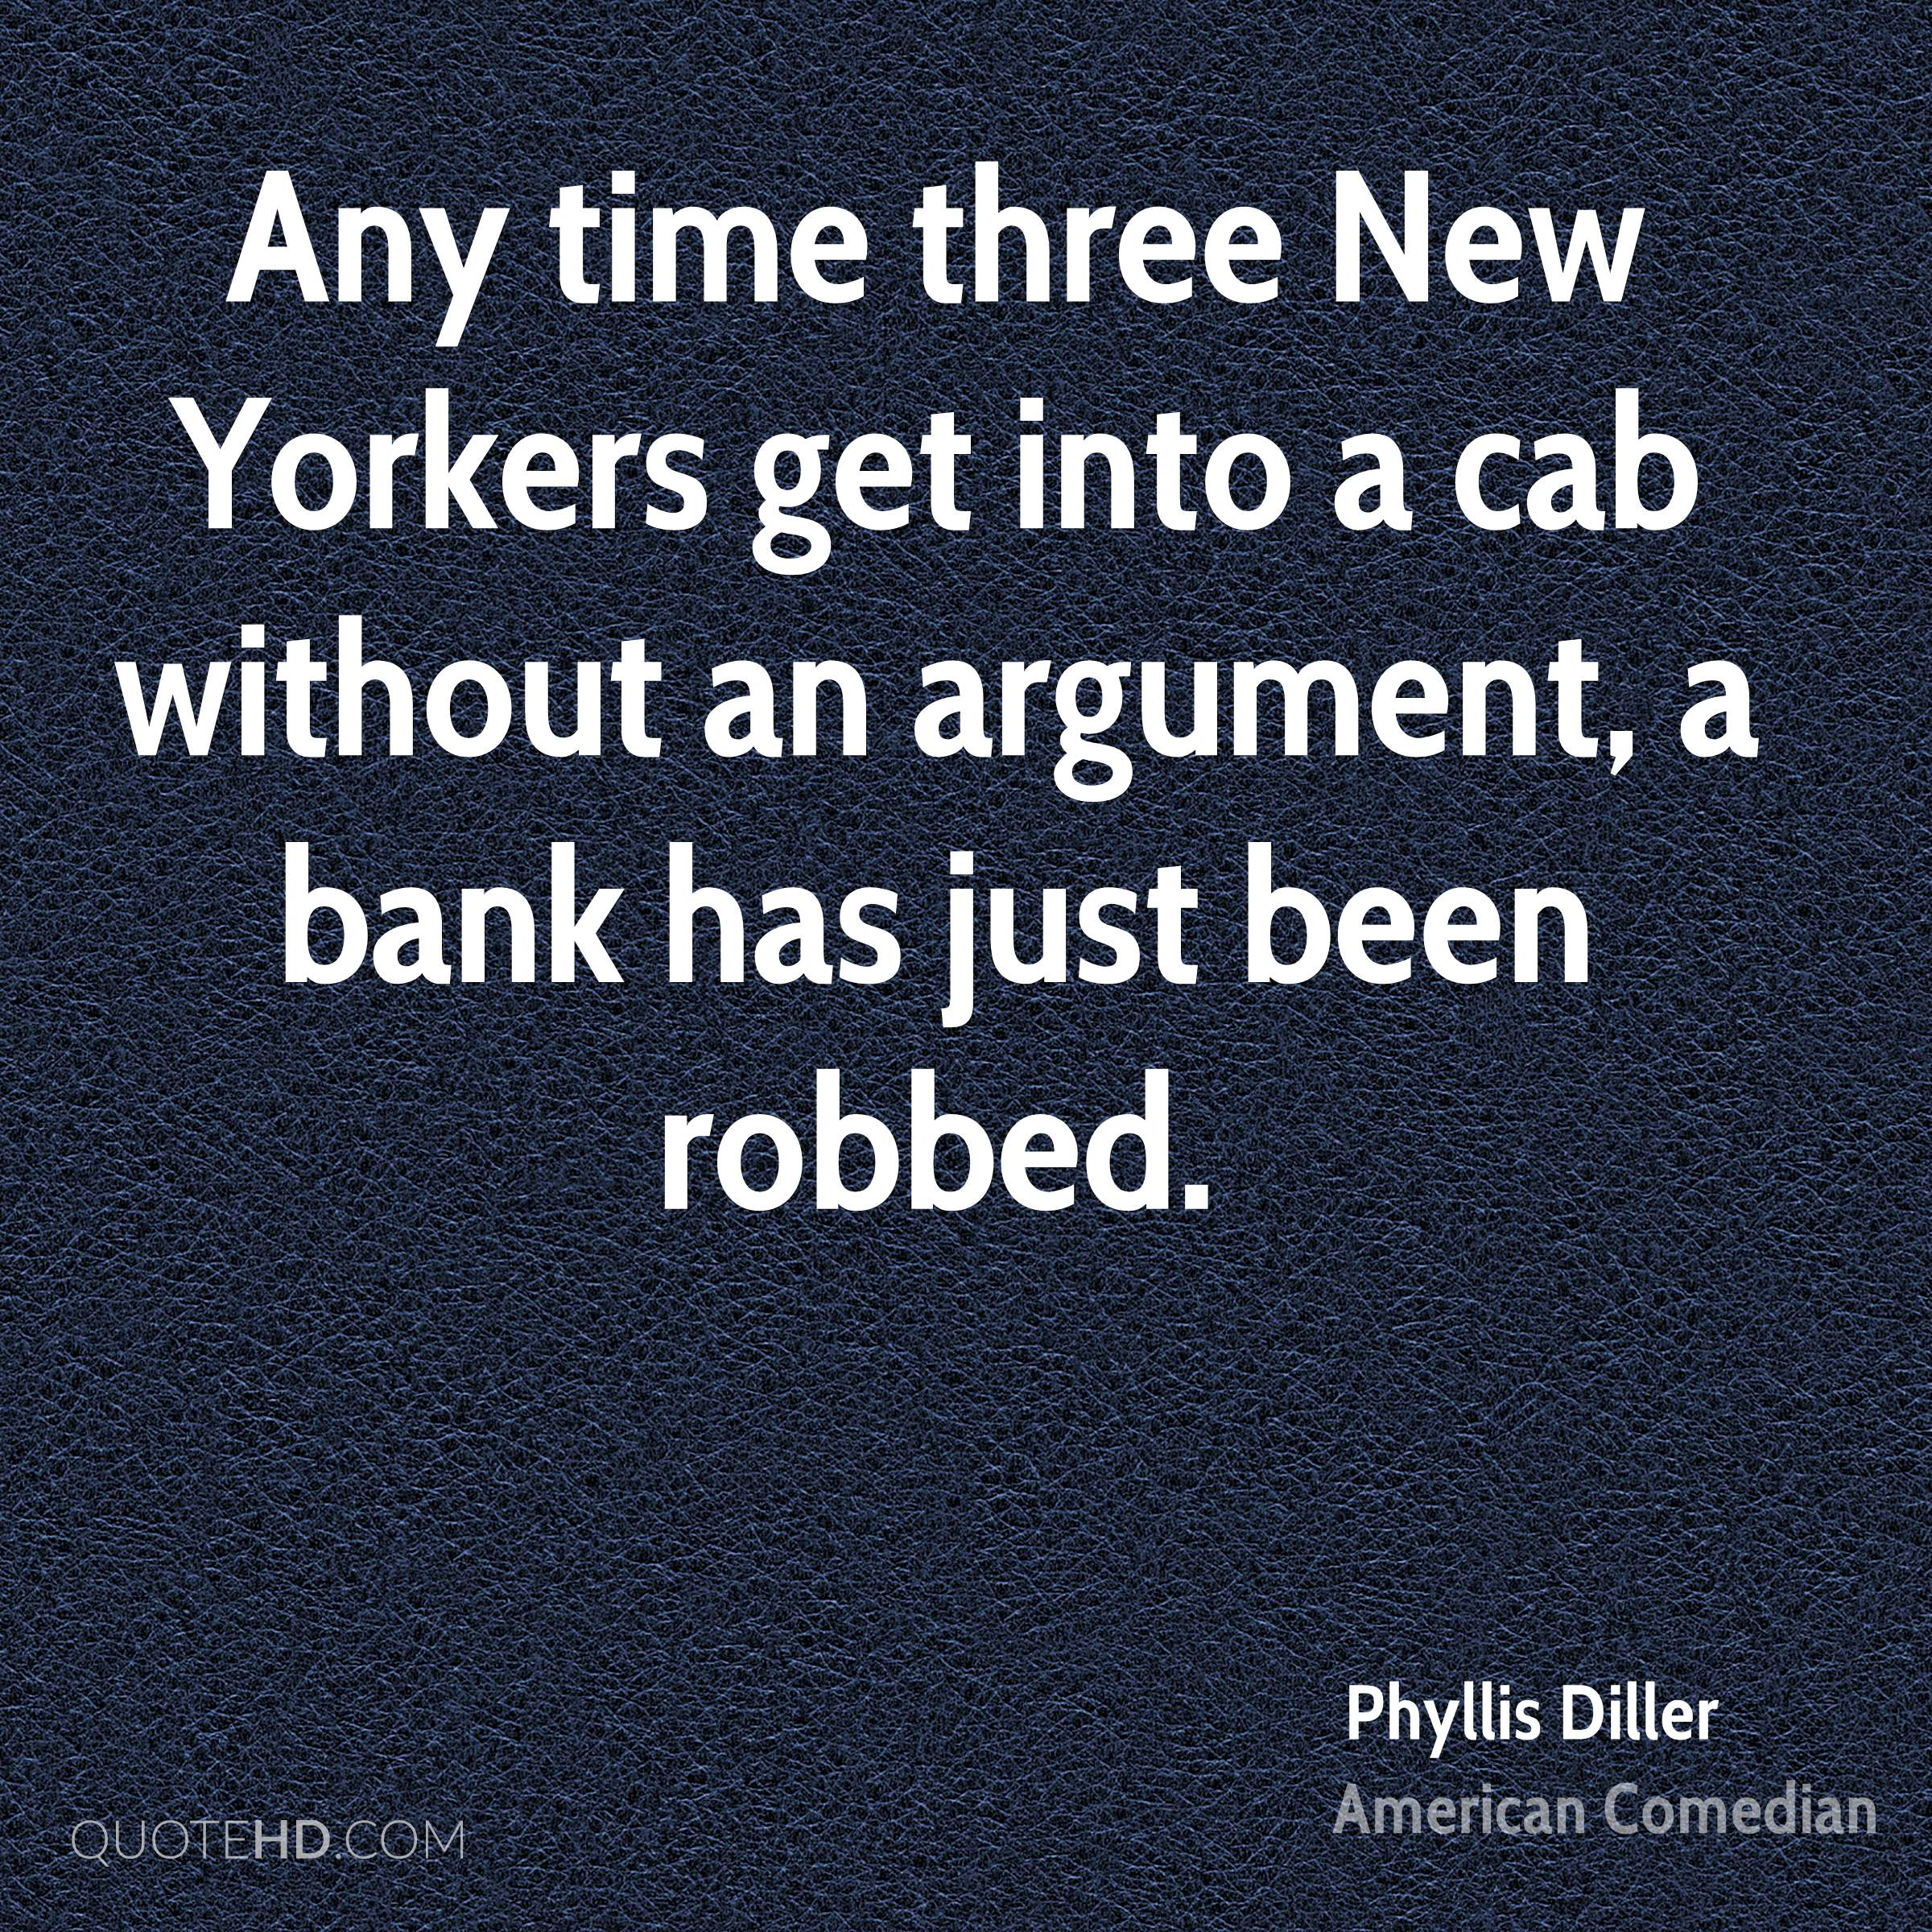 Any time three New Yorkers get into a cab without an argument, a bank has just been robbed.